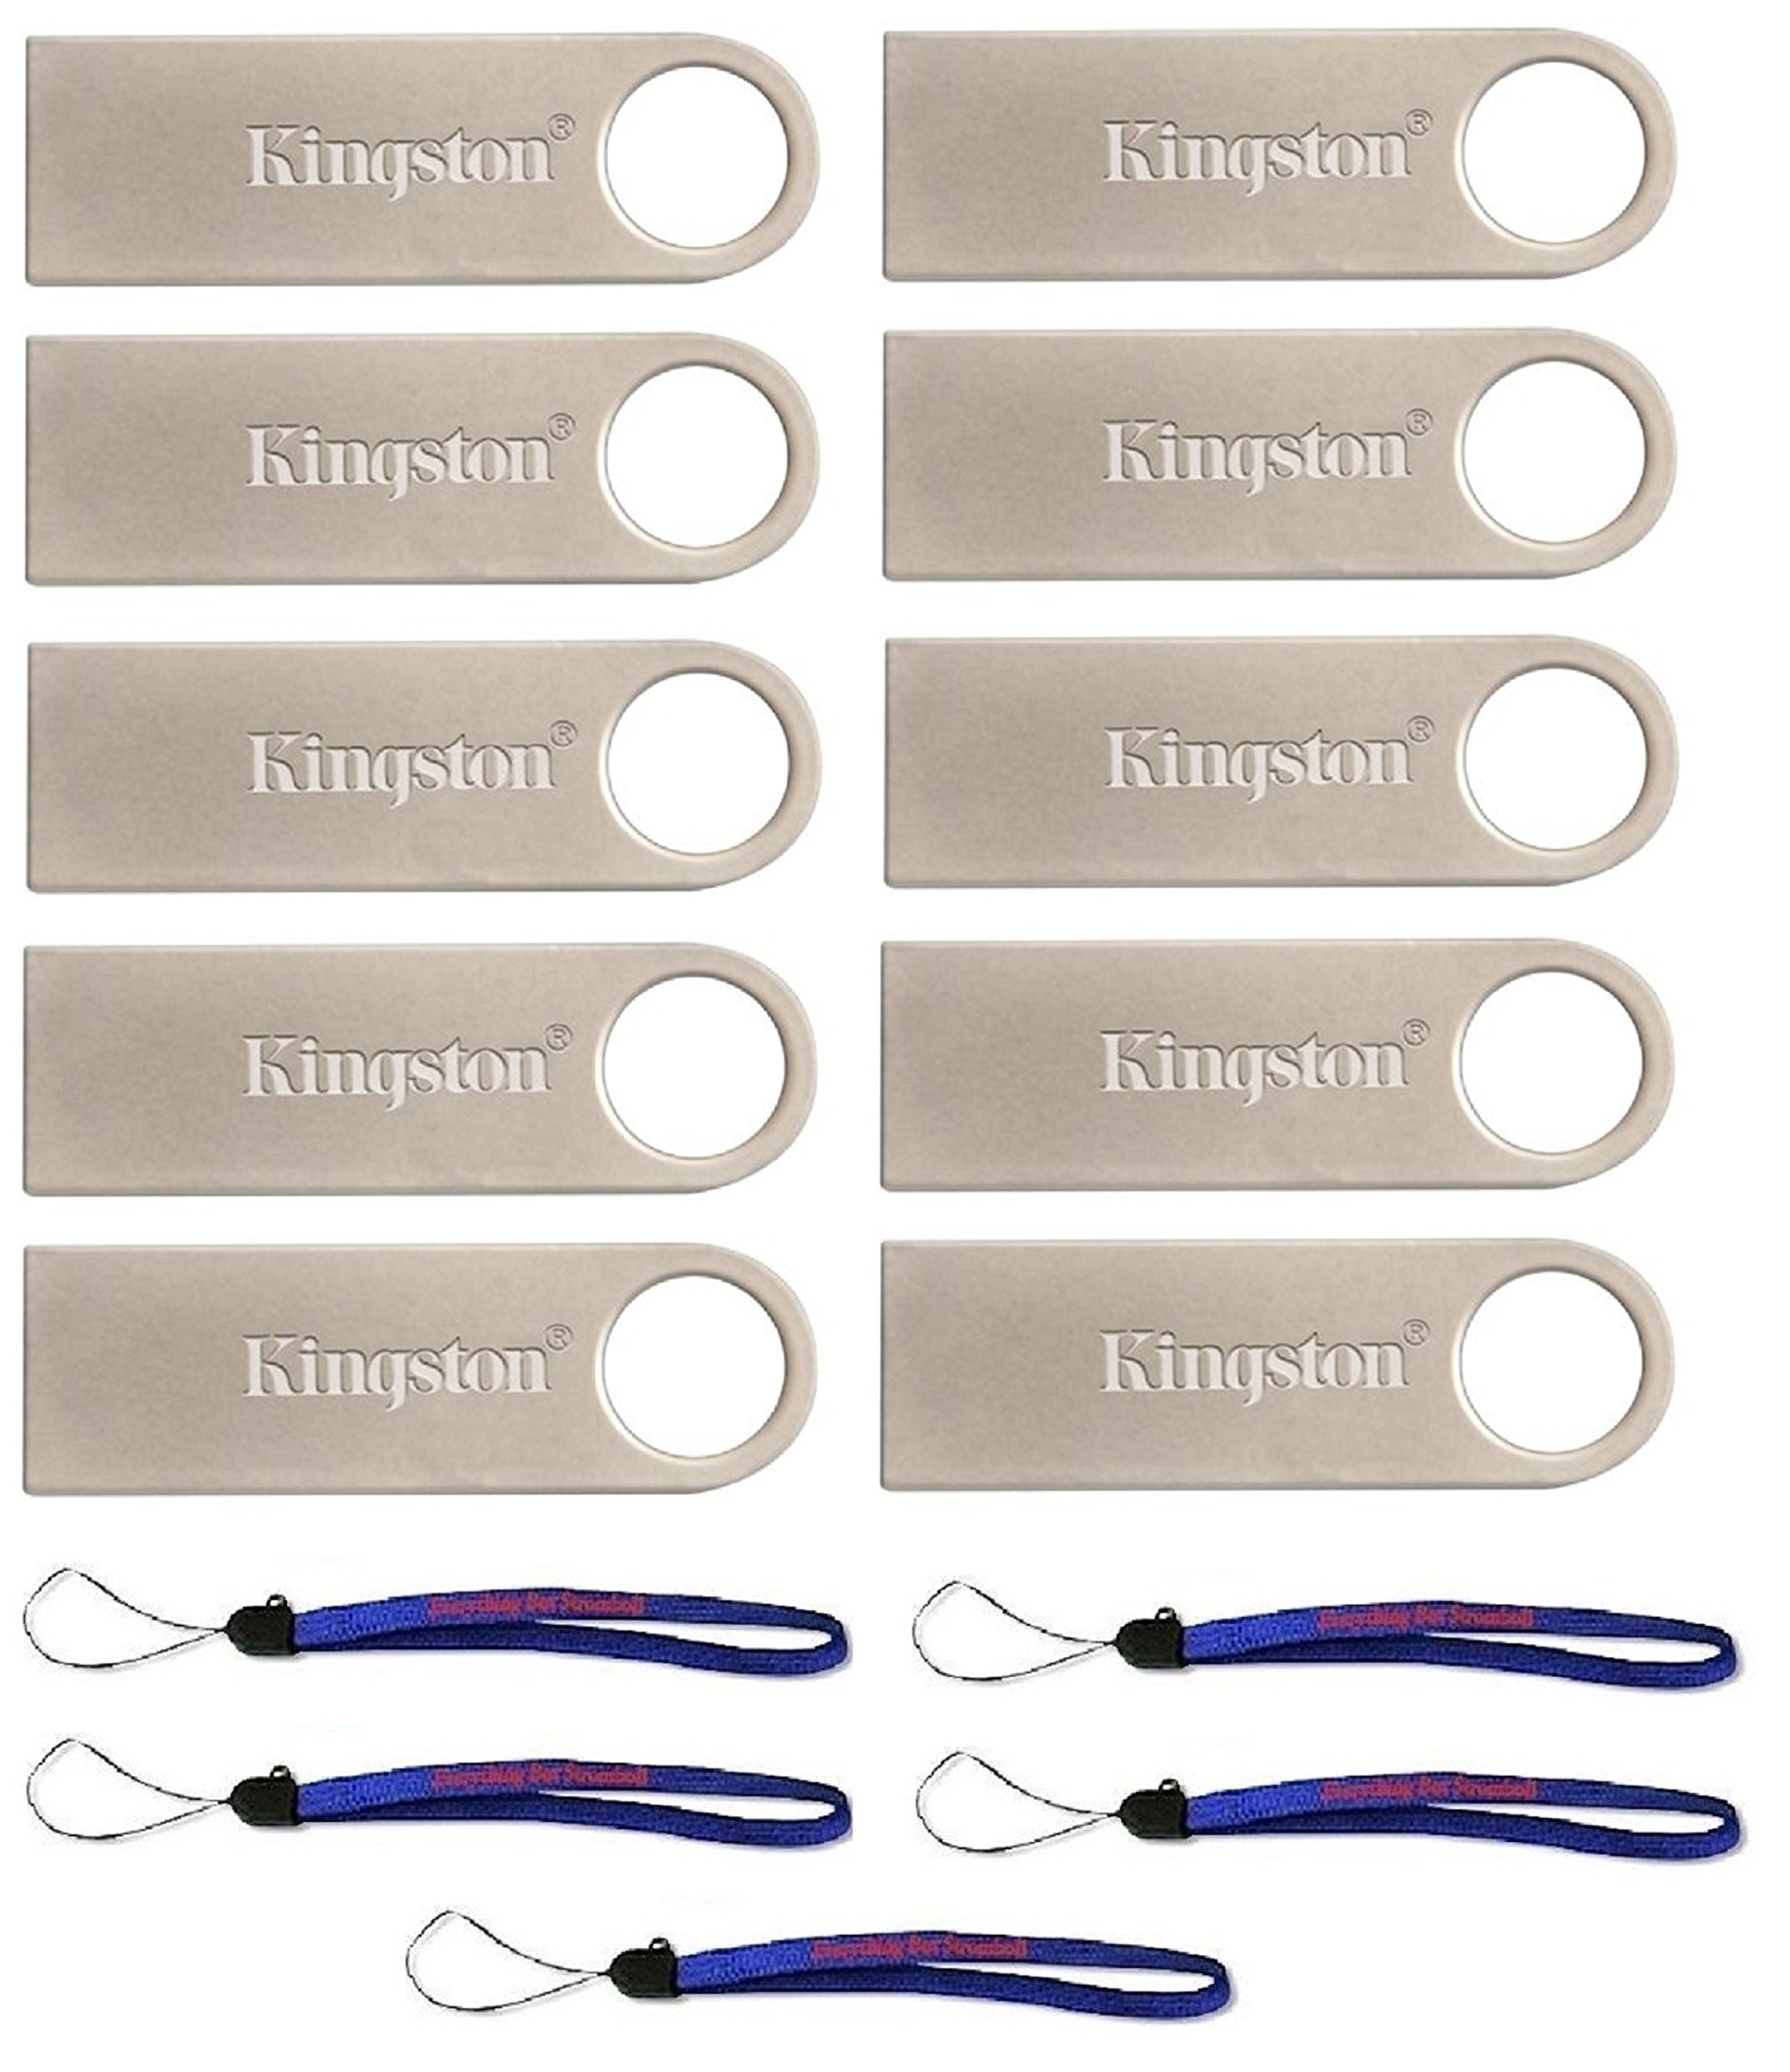 Kingston (TM) Flash Drive 10 Pack DTSE9H/32GB DataTraveler USB 2.0 Flash Drive with (5) Everything But Stromboli (TM) Lanyards by Kingston